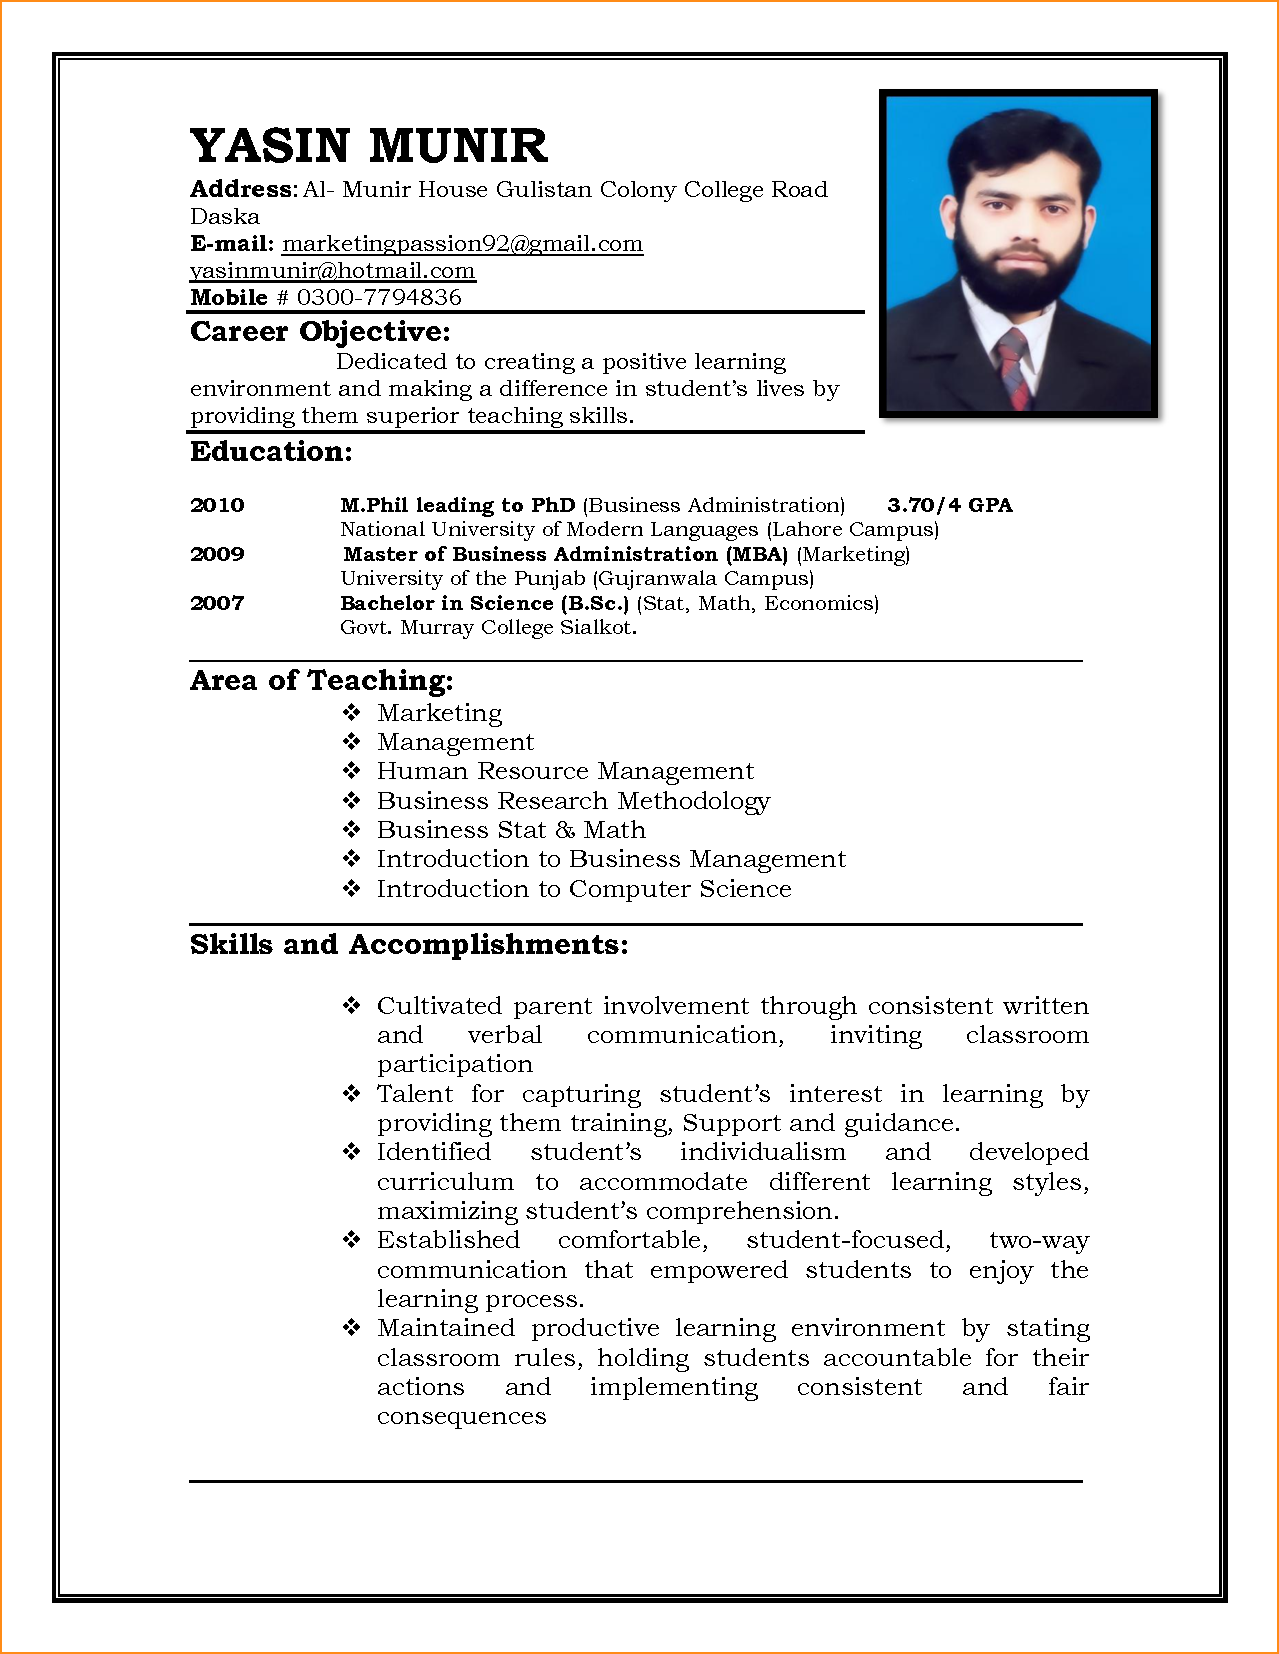 Resume Format For Jobs Cv Format For Job Application 75574648 When